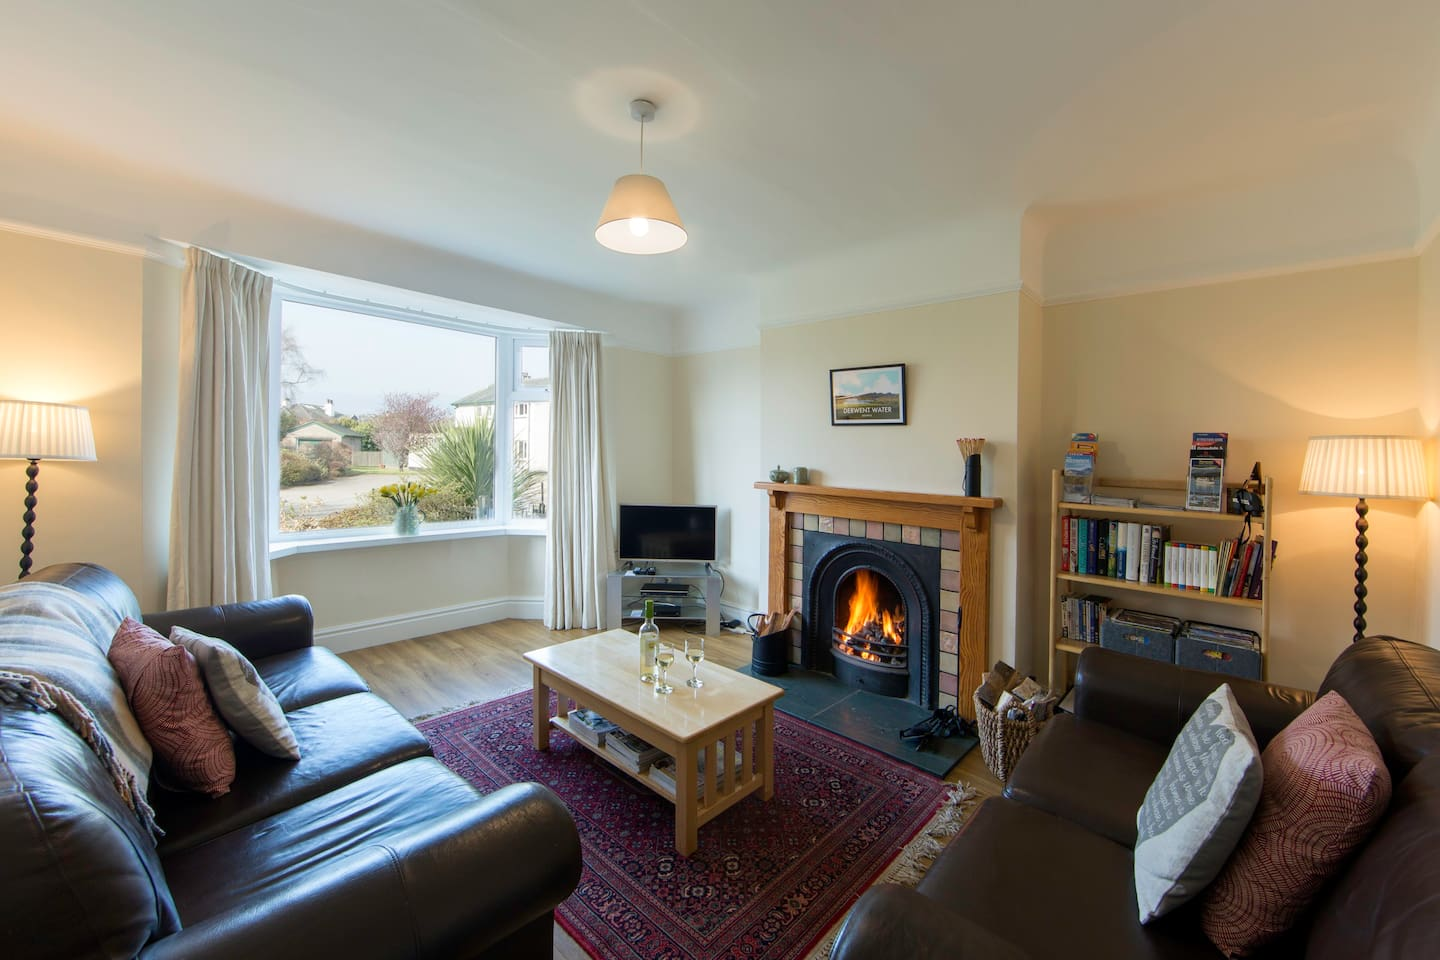 The warm, welcoming front sitting room with roaring log fire